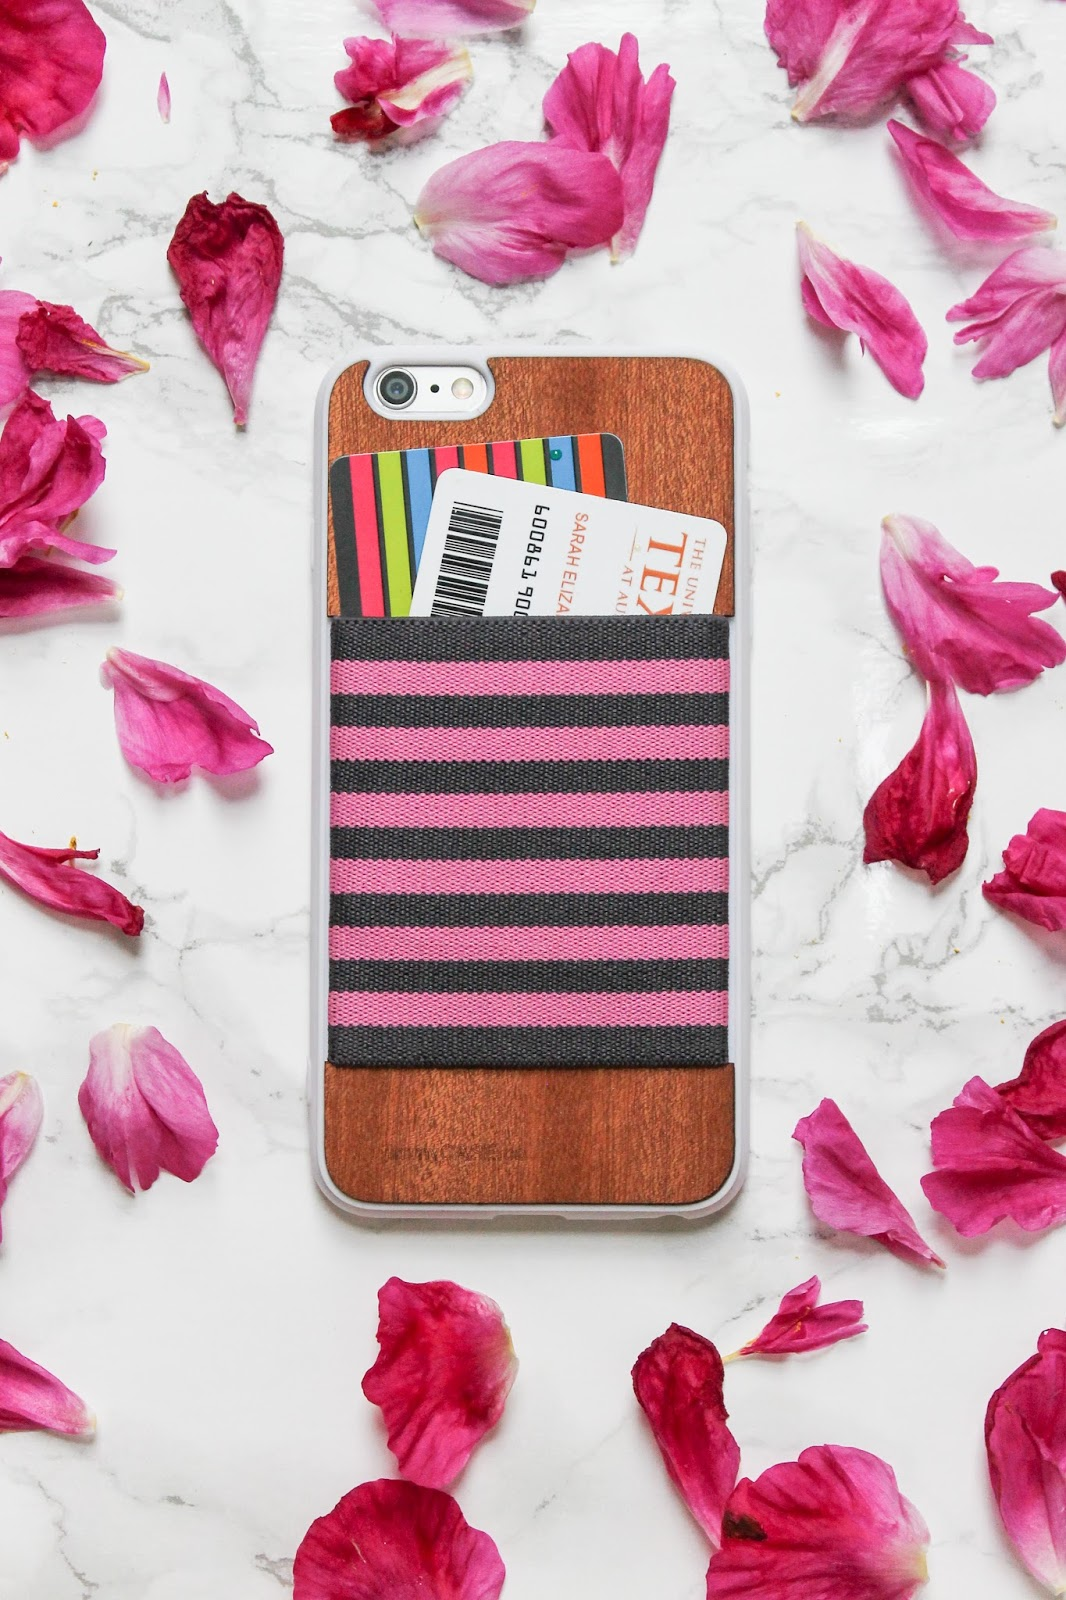 The Best Phone Case for College: jimmyCASE | www.thebellainsider.com